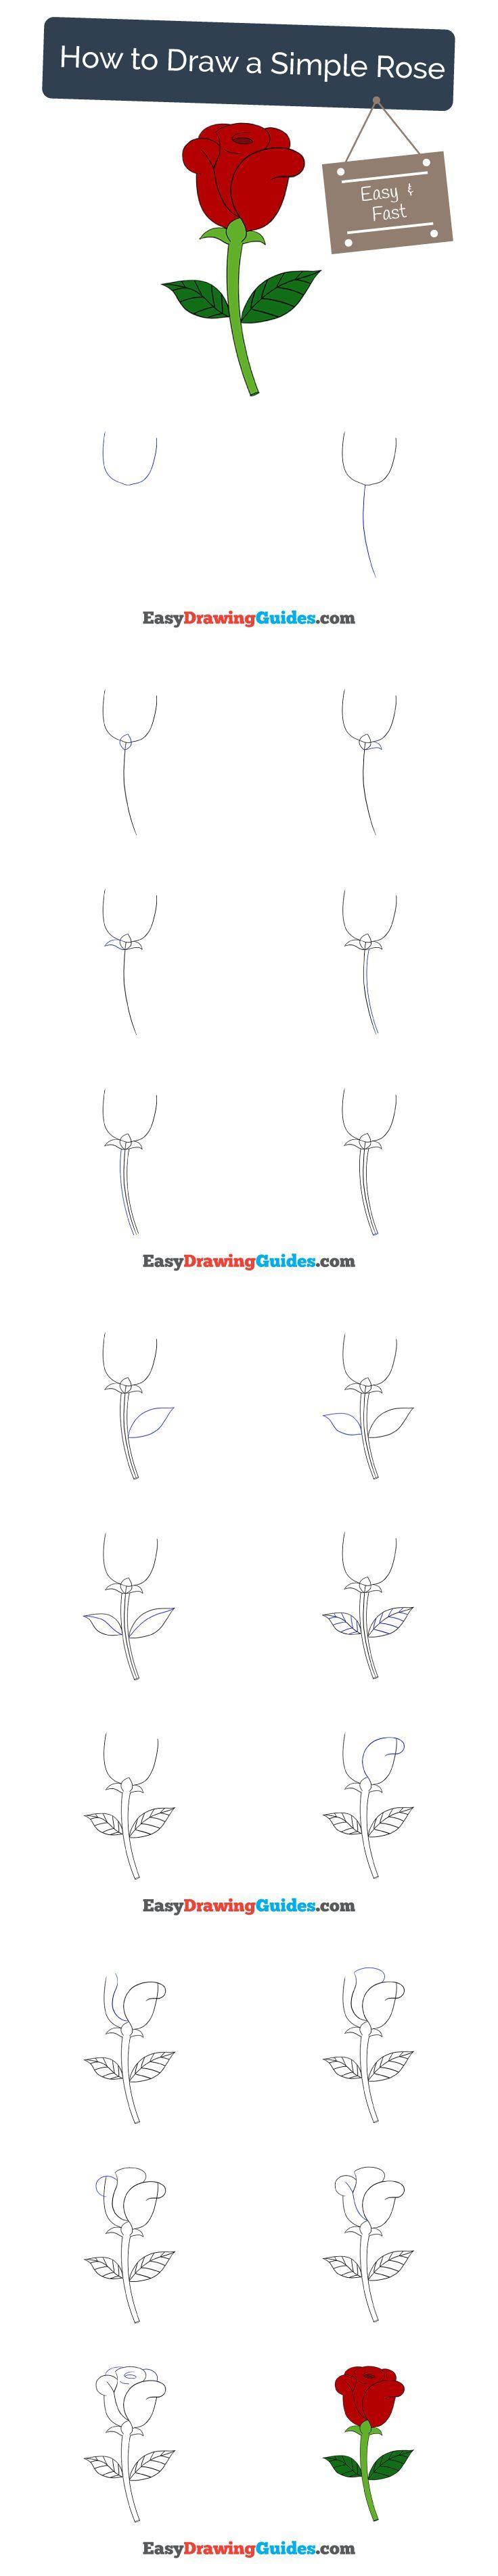 Learn How to Draw a Simple Rose: Easy Step-by-Step Drawing Tutorial for Kids and Beginners.#rose #flower #drawing. See the full tutorial at https://easydrawingguides.com/how-to-draw-a-simple-rose/